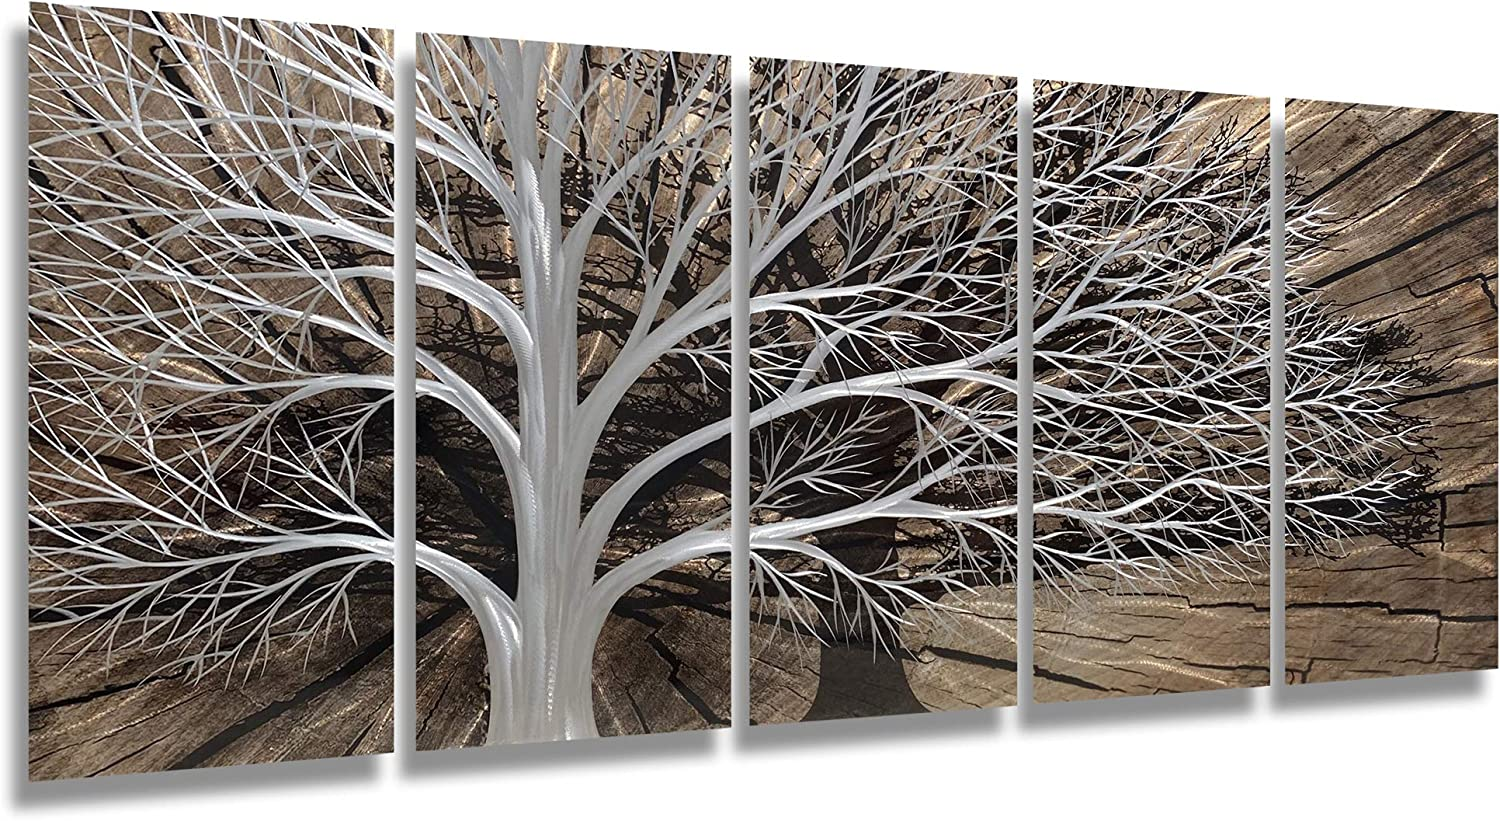 Brilliant Arts Handcrafted Silver Tree Metal Scuplture Black Shadow 3D Hanging Wall Art 5-panels Contemporary Decor for Office